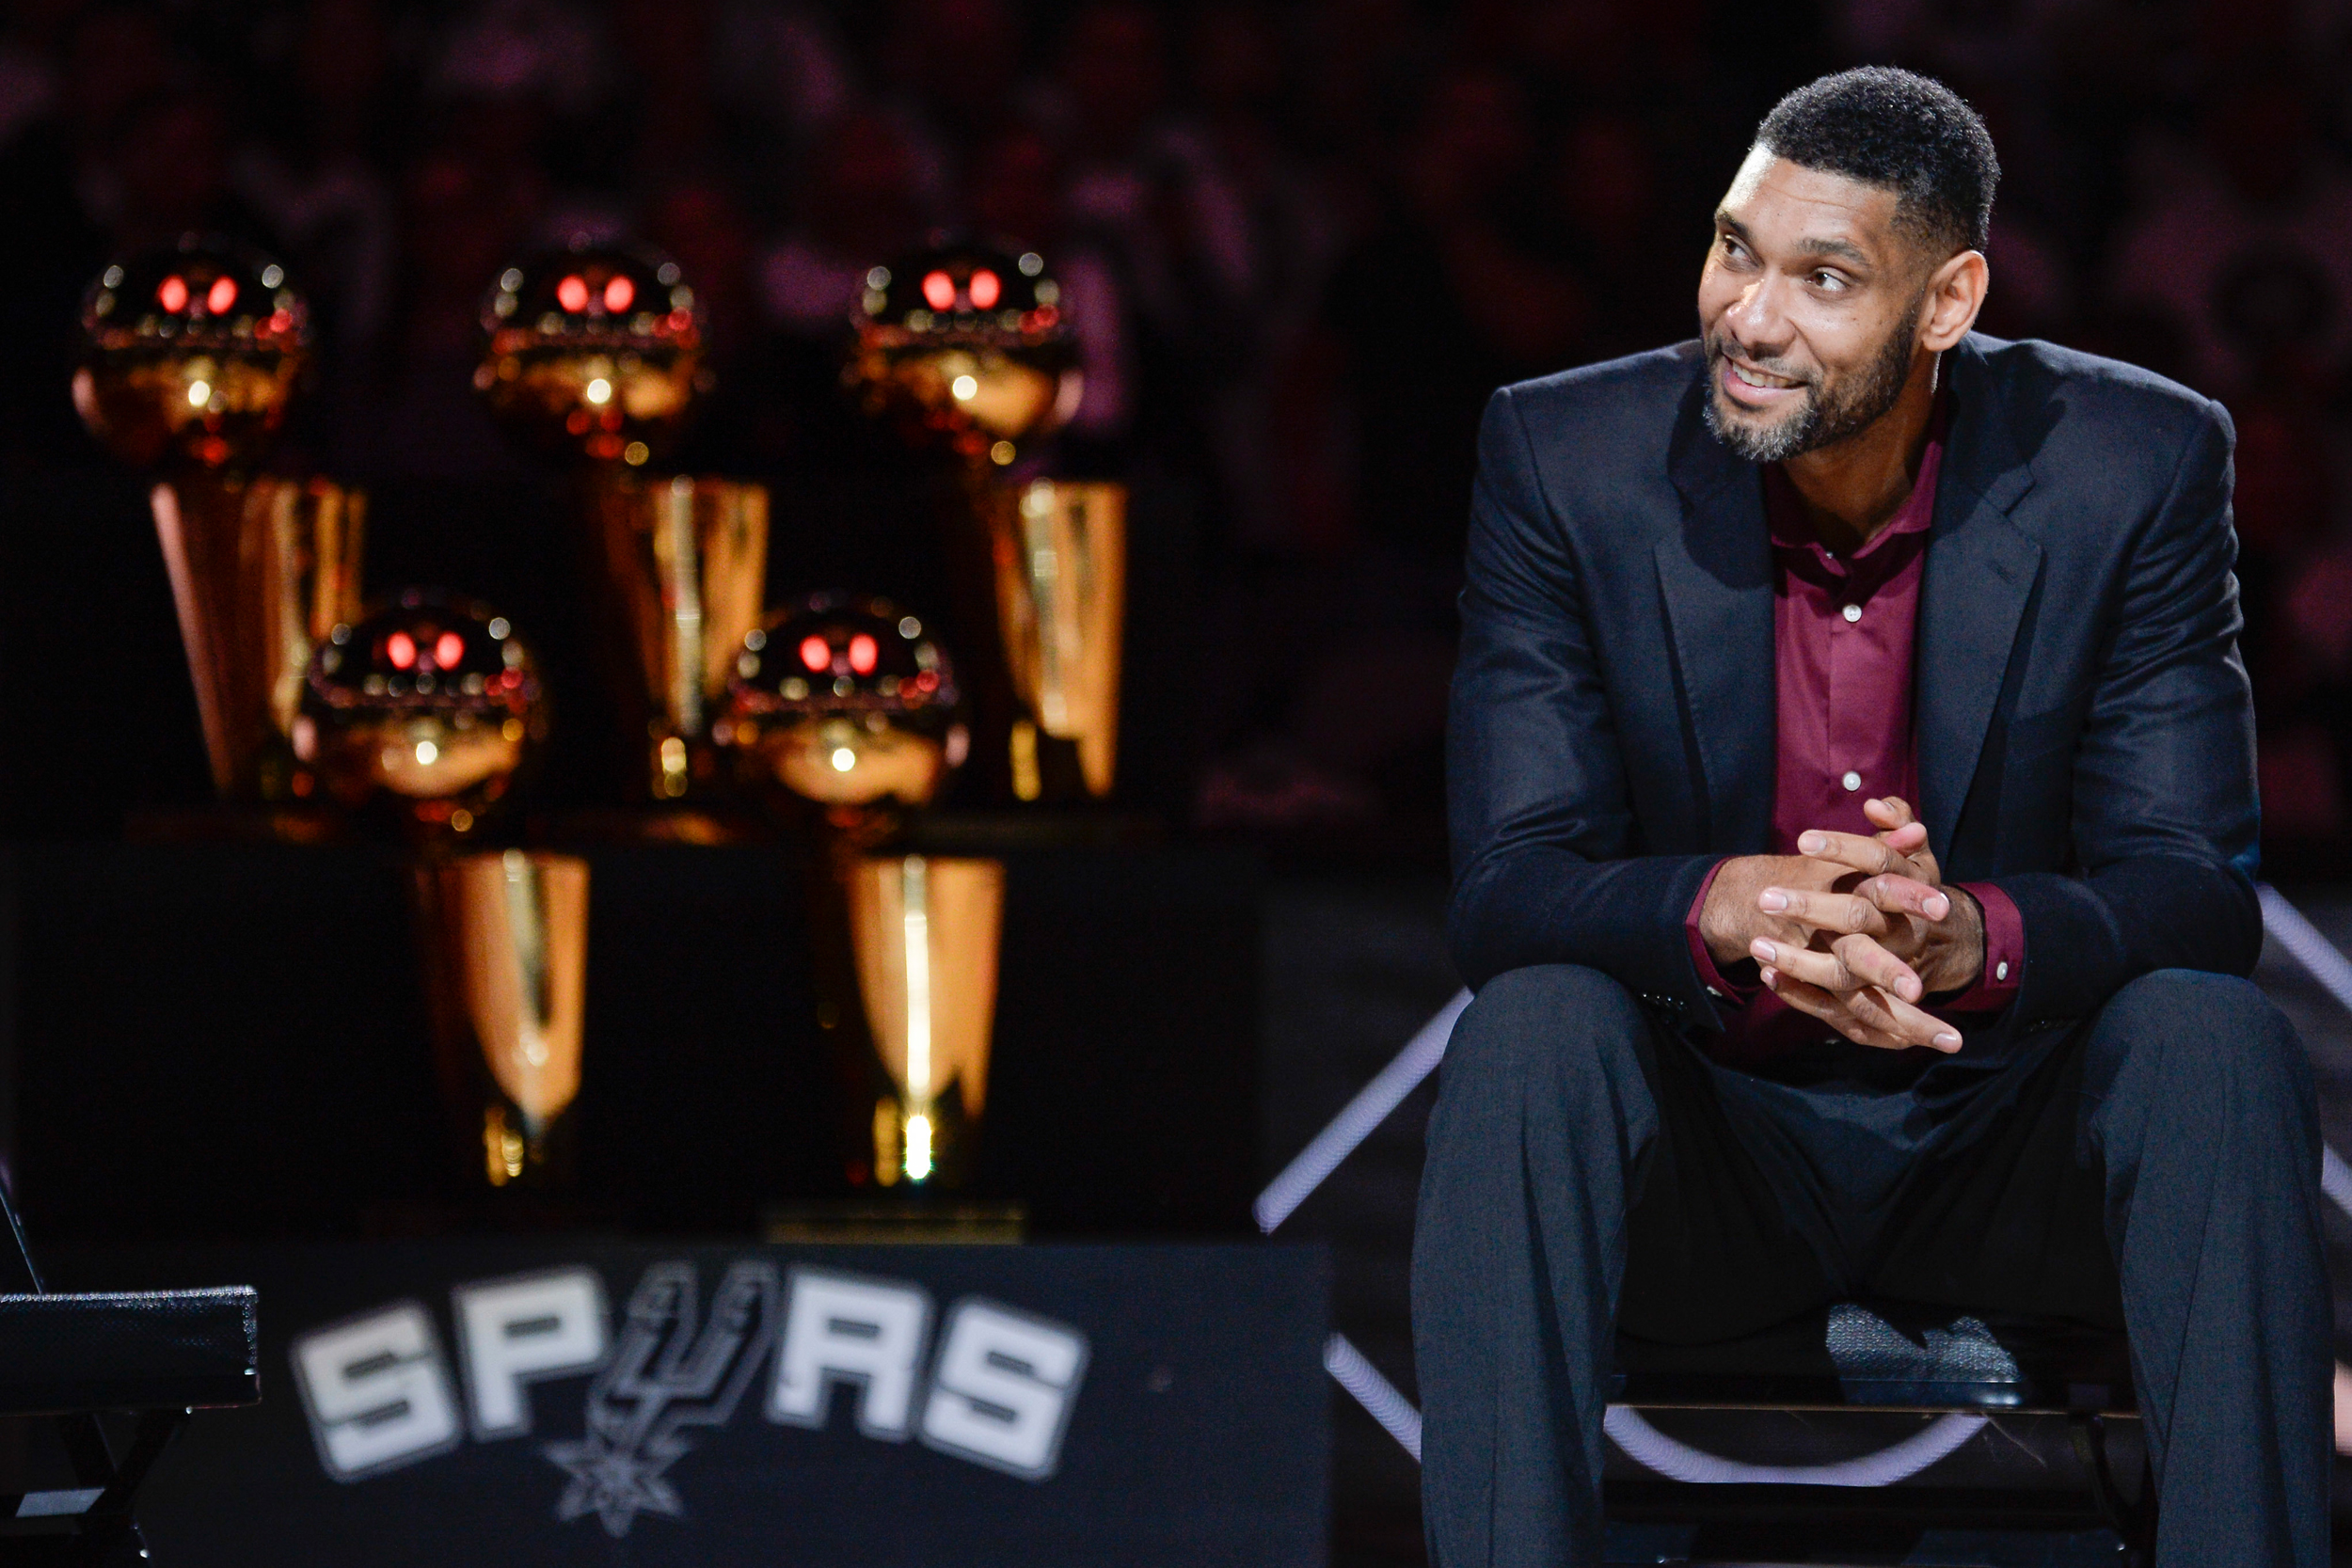 San Antonio Spurs' Tim Duncan listens while special guests speak about him during his jersey retirement ceremony, Sunday, Dec. 18, 2016, in San Antonio.